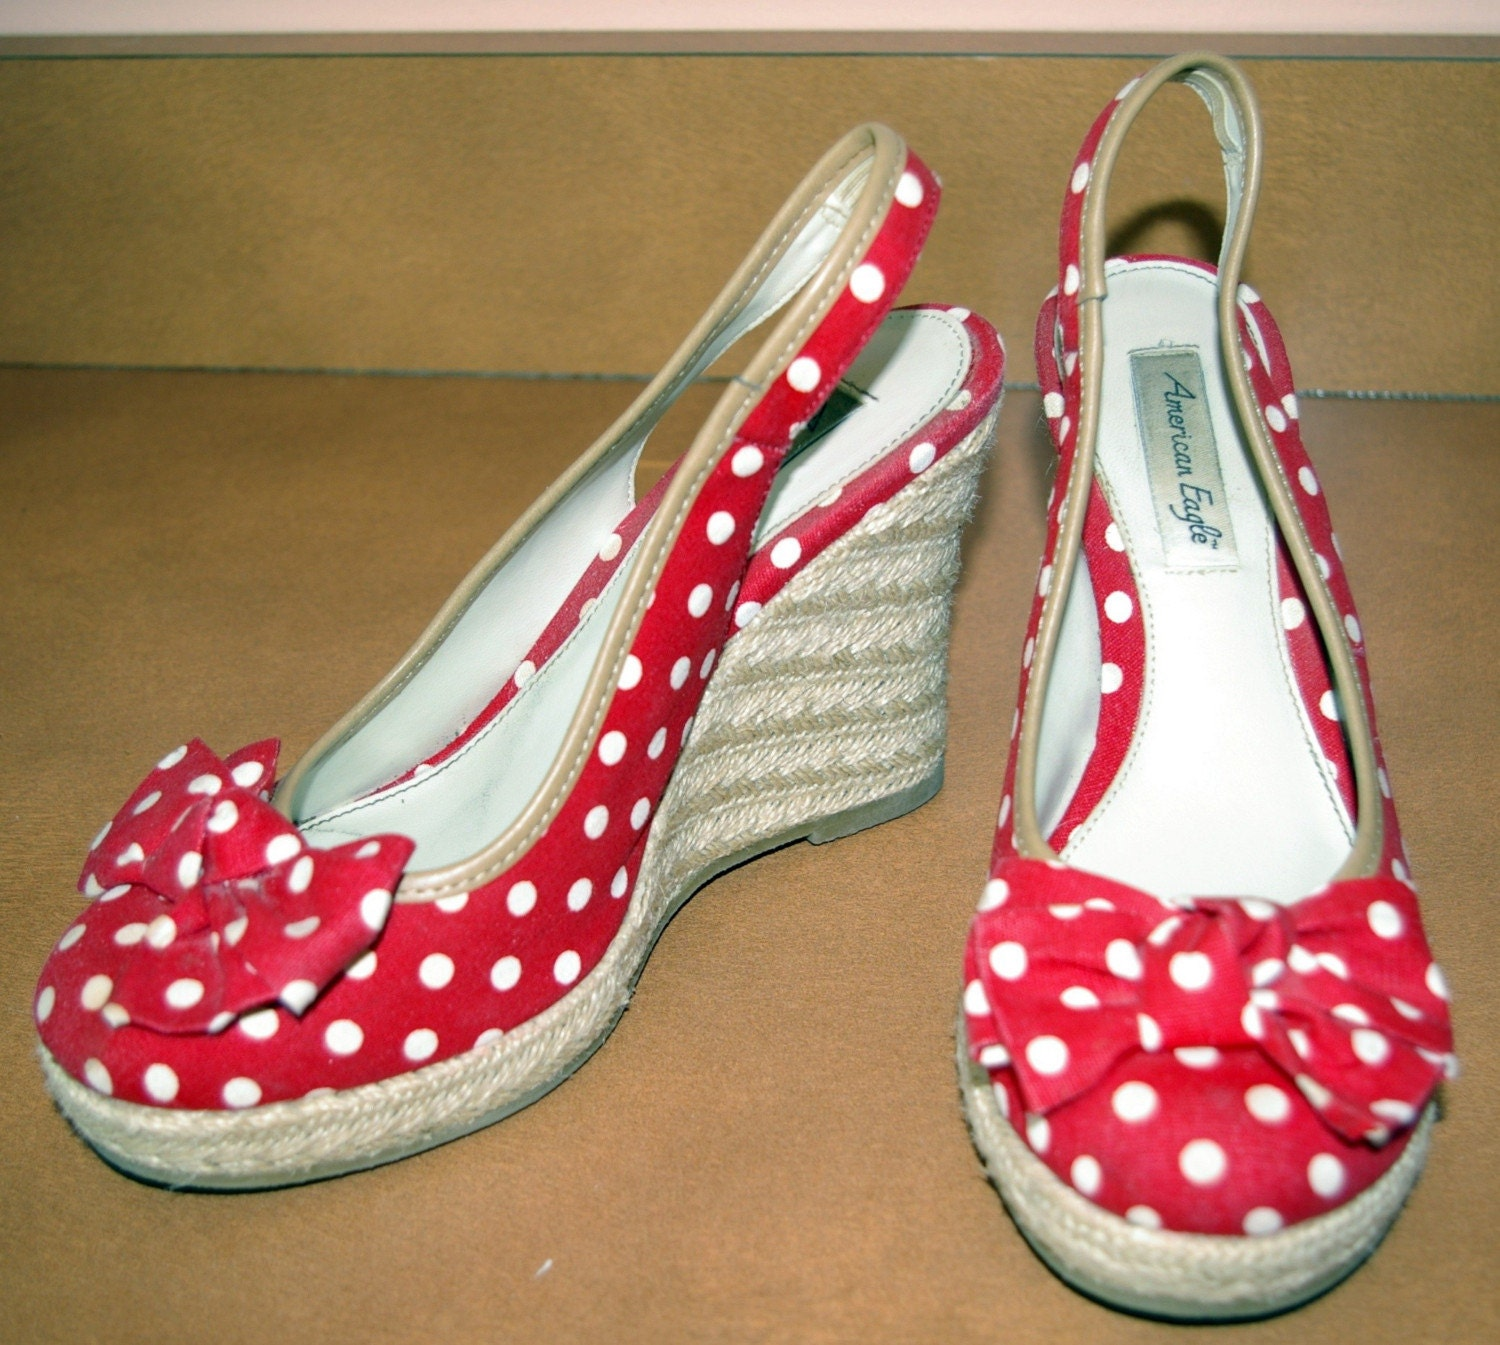 vintage and white polka dot wedge shoes by bettysworld4u